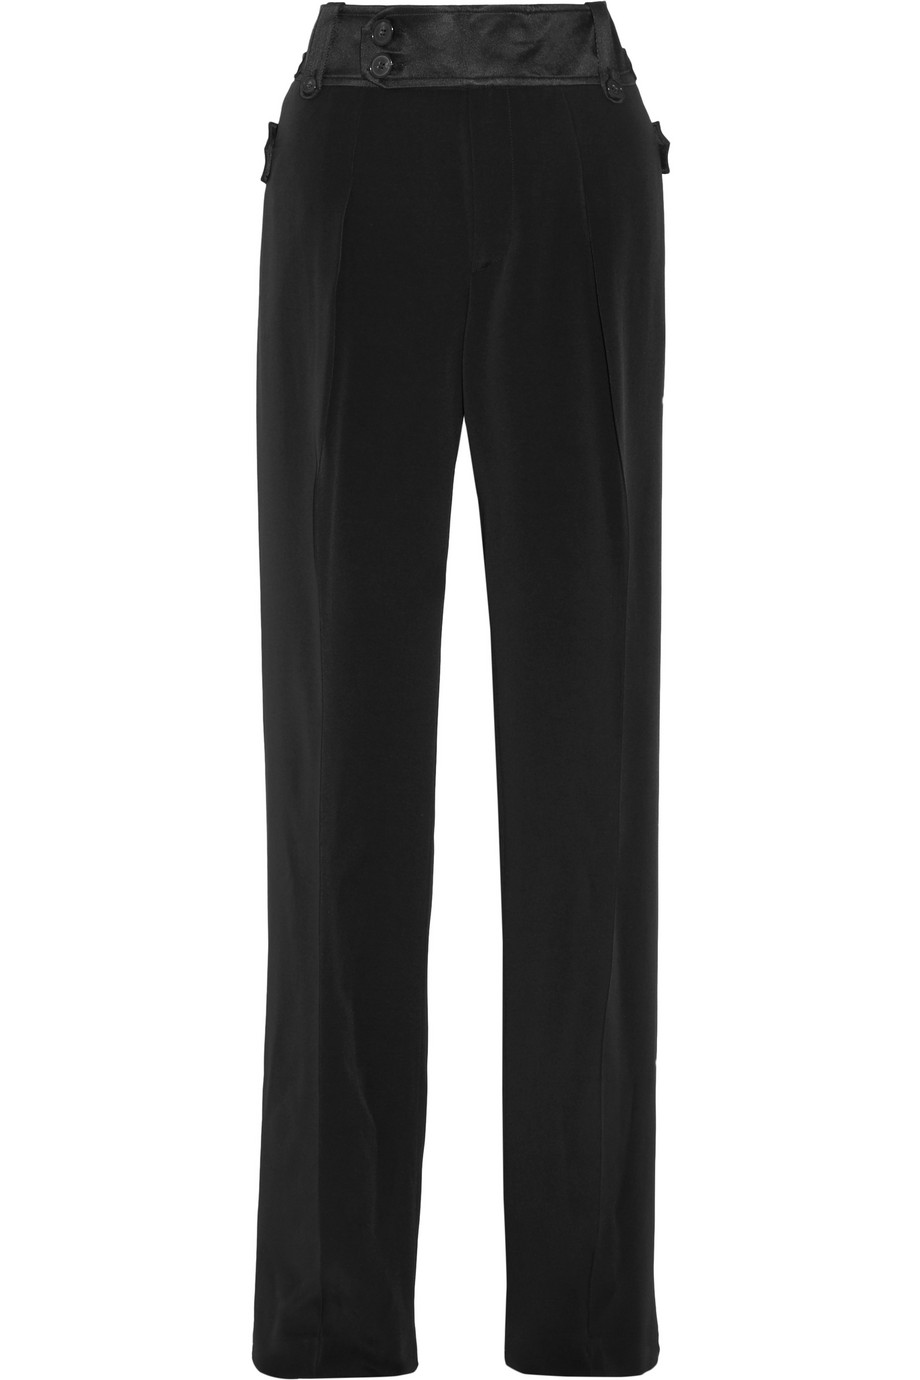 Pleated Twill-Trimmed Cady Wide-Leg Pants, Black, Women's, Size: 44